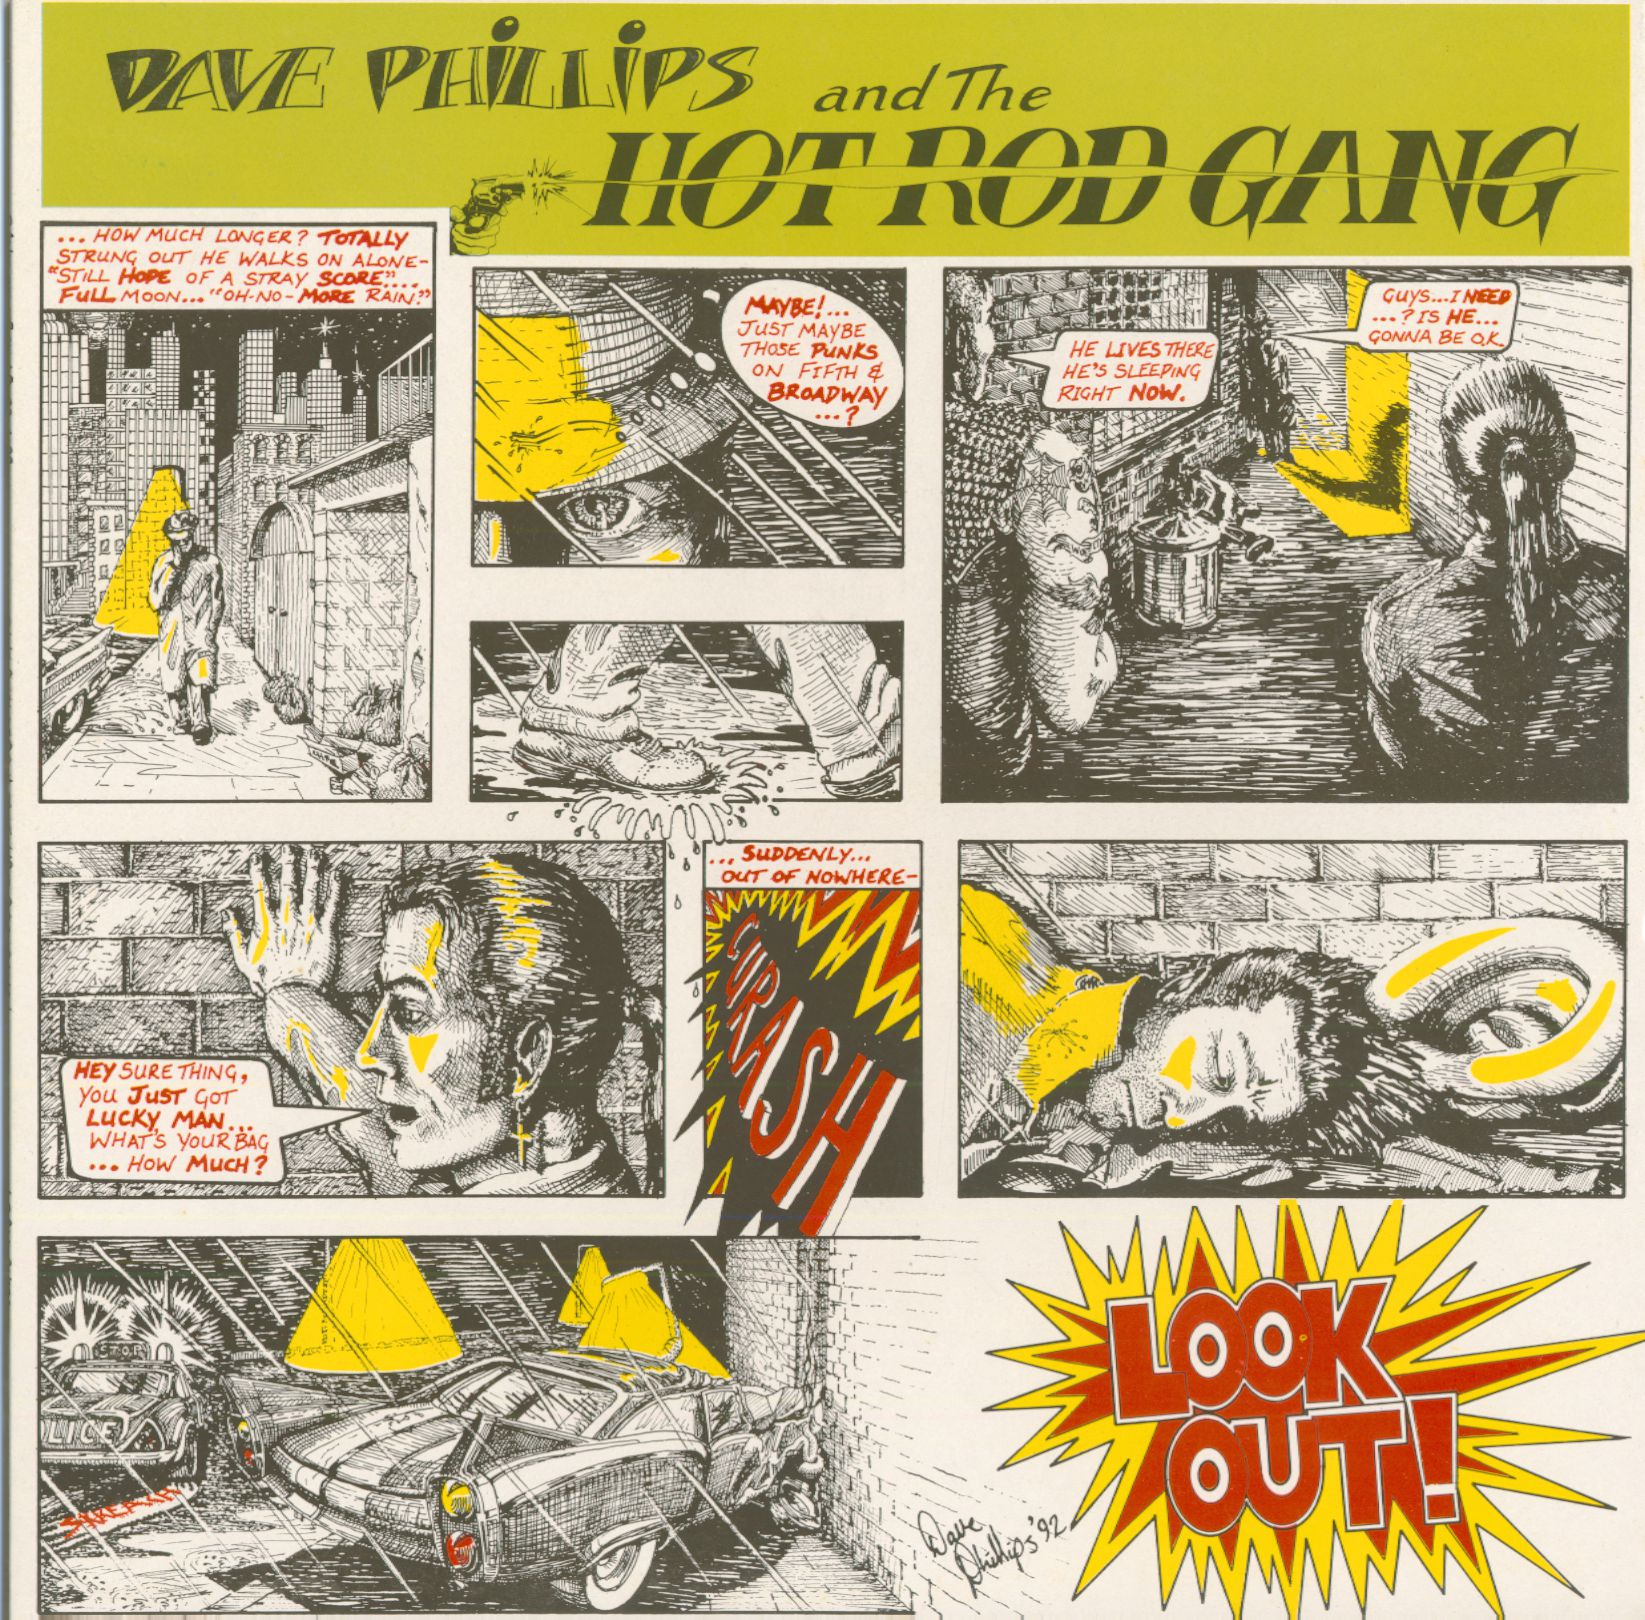 Dave Phillips and The Hot Rod Gang - Wild Youth